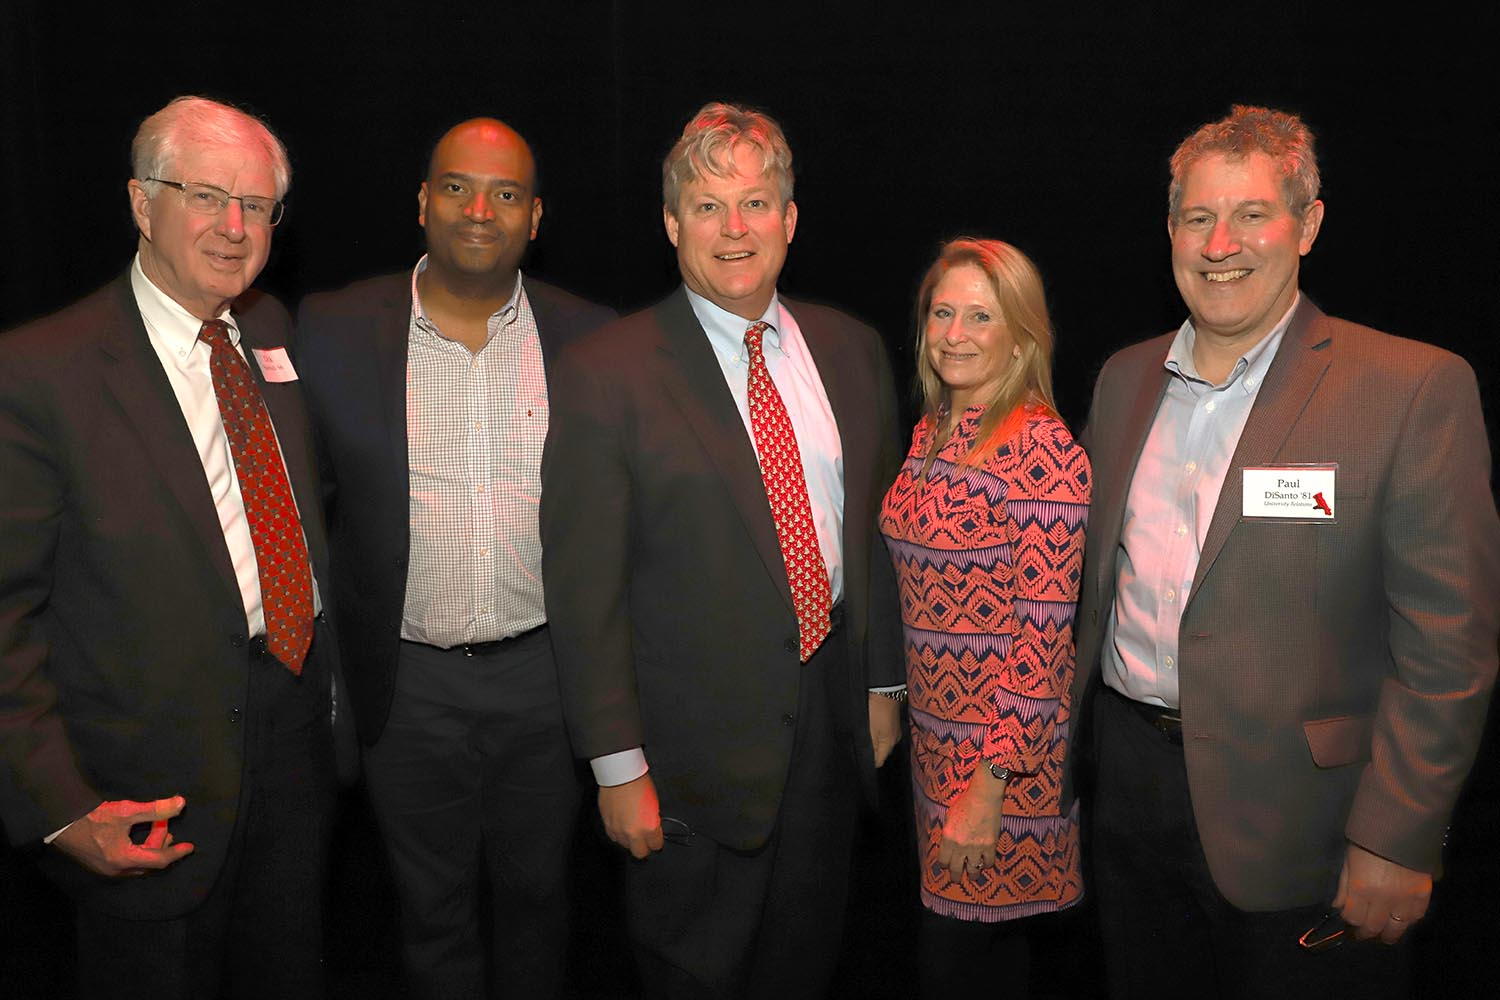 From left, Richard Stabnick '66, Vice President for University Relations Frantz Williams, Ted Kennedy, Jr. '83, P '16 '20, Trustee Kiki Kennedy P '16 '20, Director of Leadership Giving Paul DiSanto.